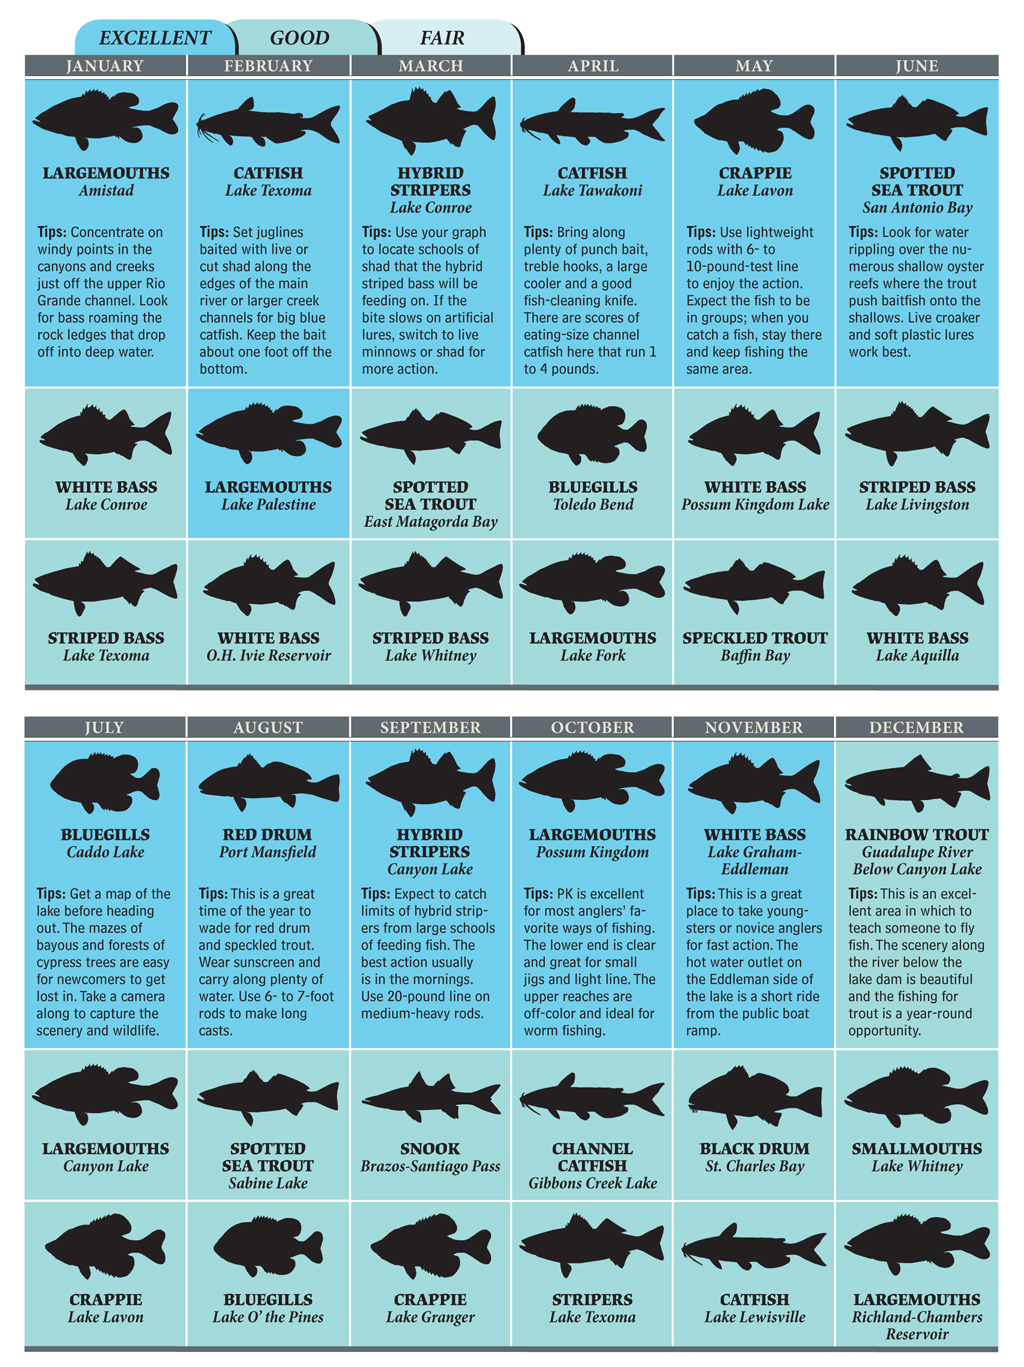 Hottest Spots for Texas Fishing in 2012